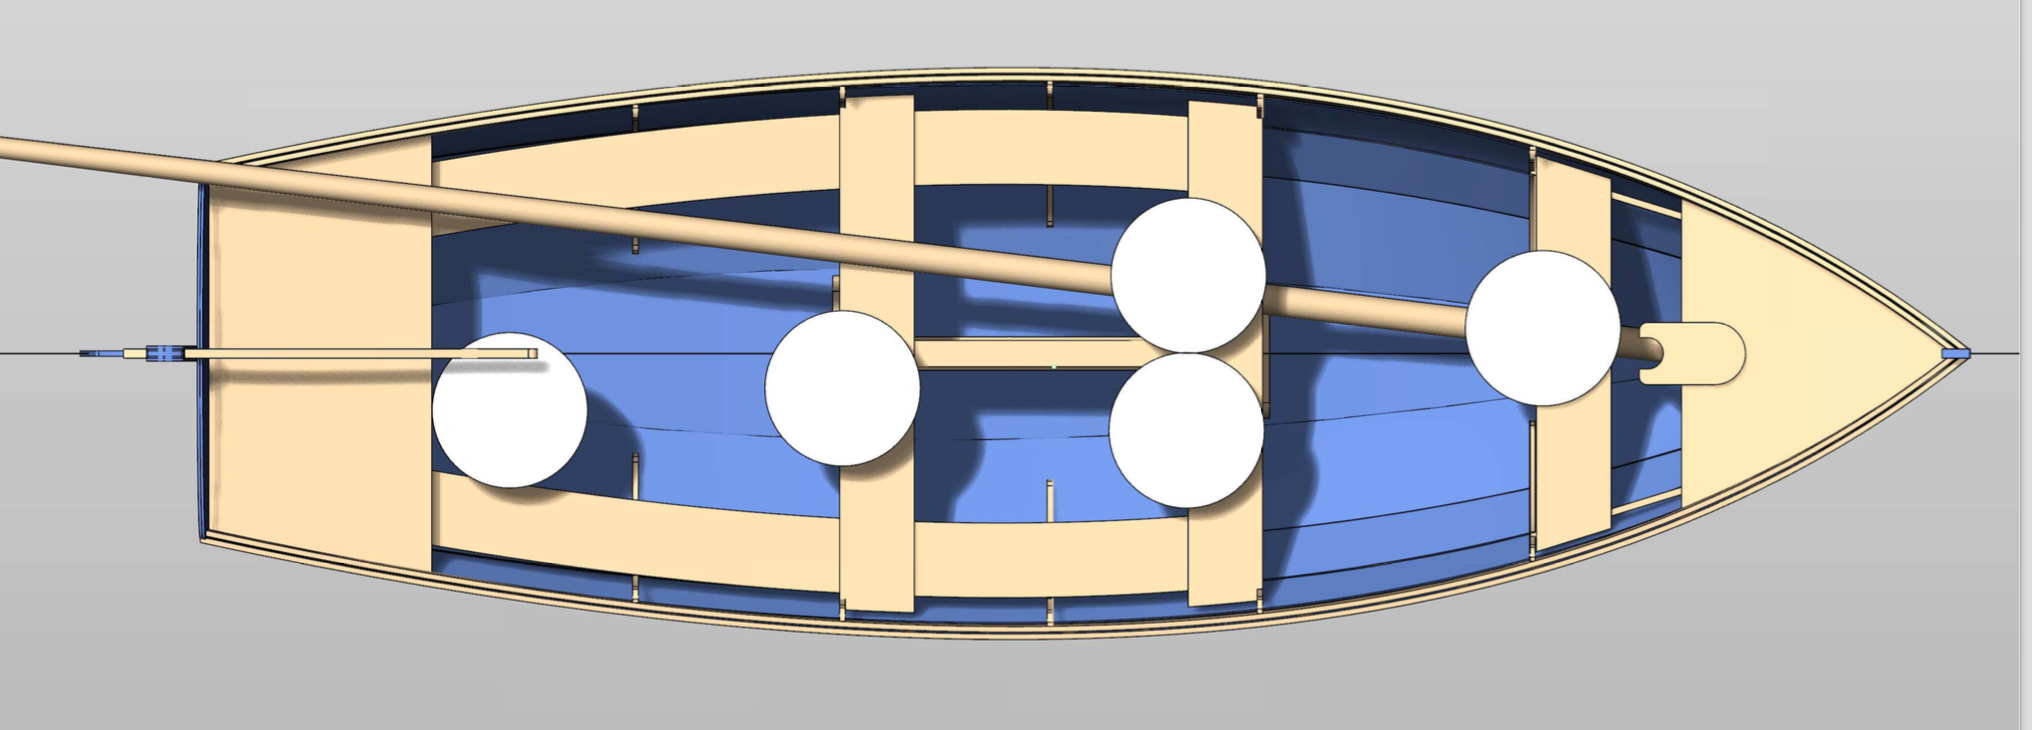 Mast stowage and rowing positions